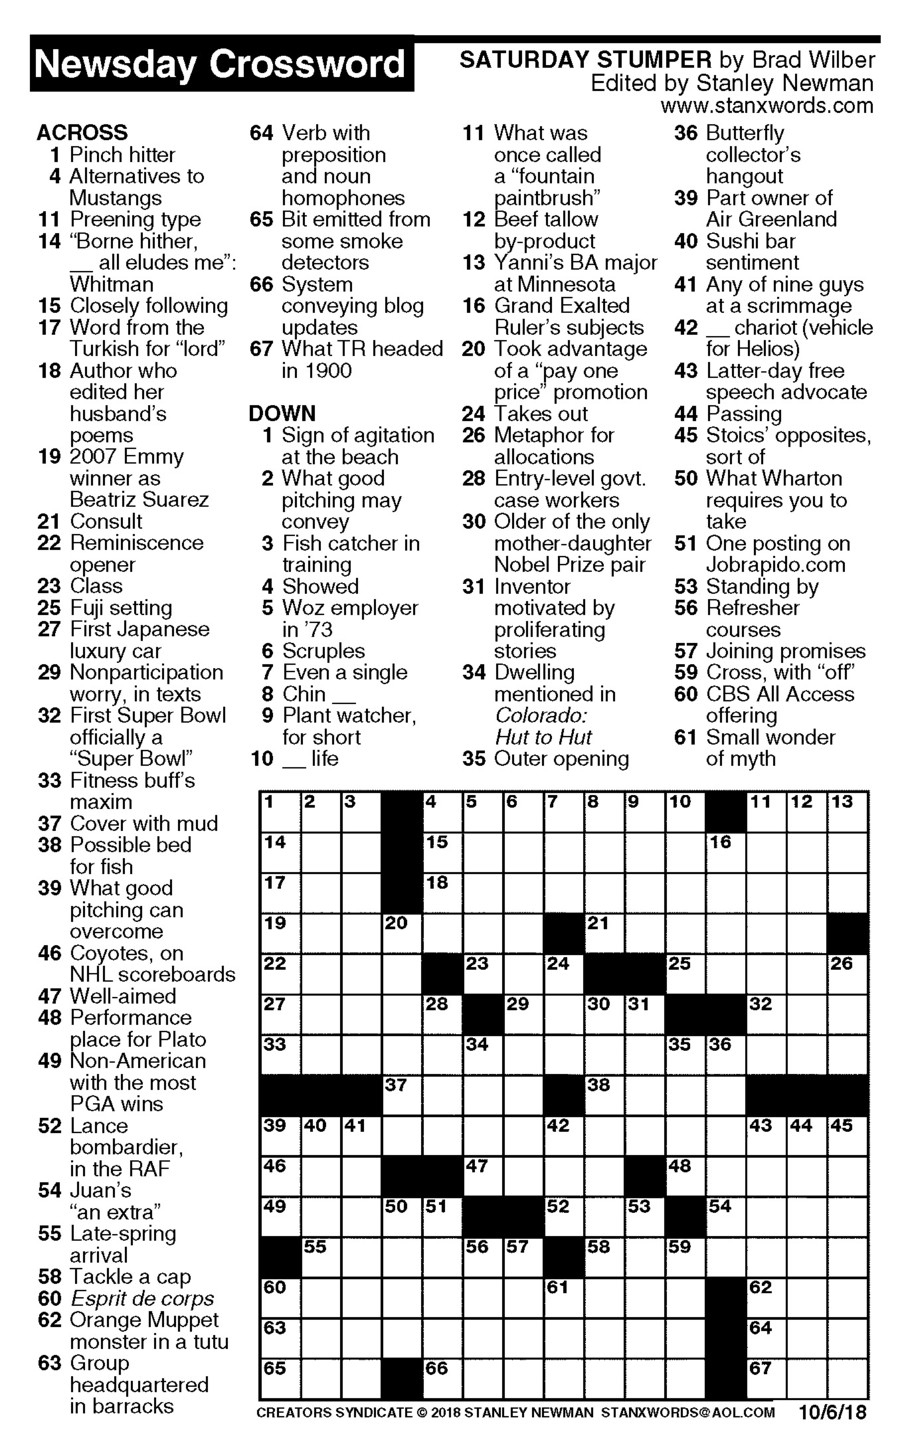 Newsday Crossword Puzzle For Oct 06, 2018,stanley Newman - October Crossword Puzzle Printable